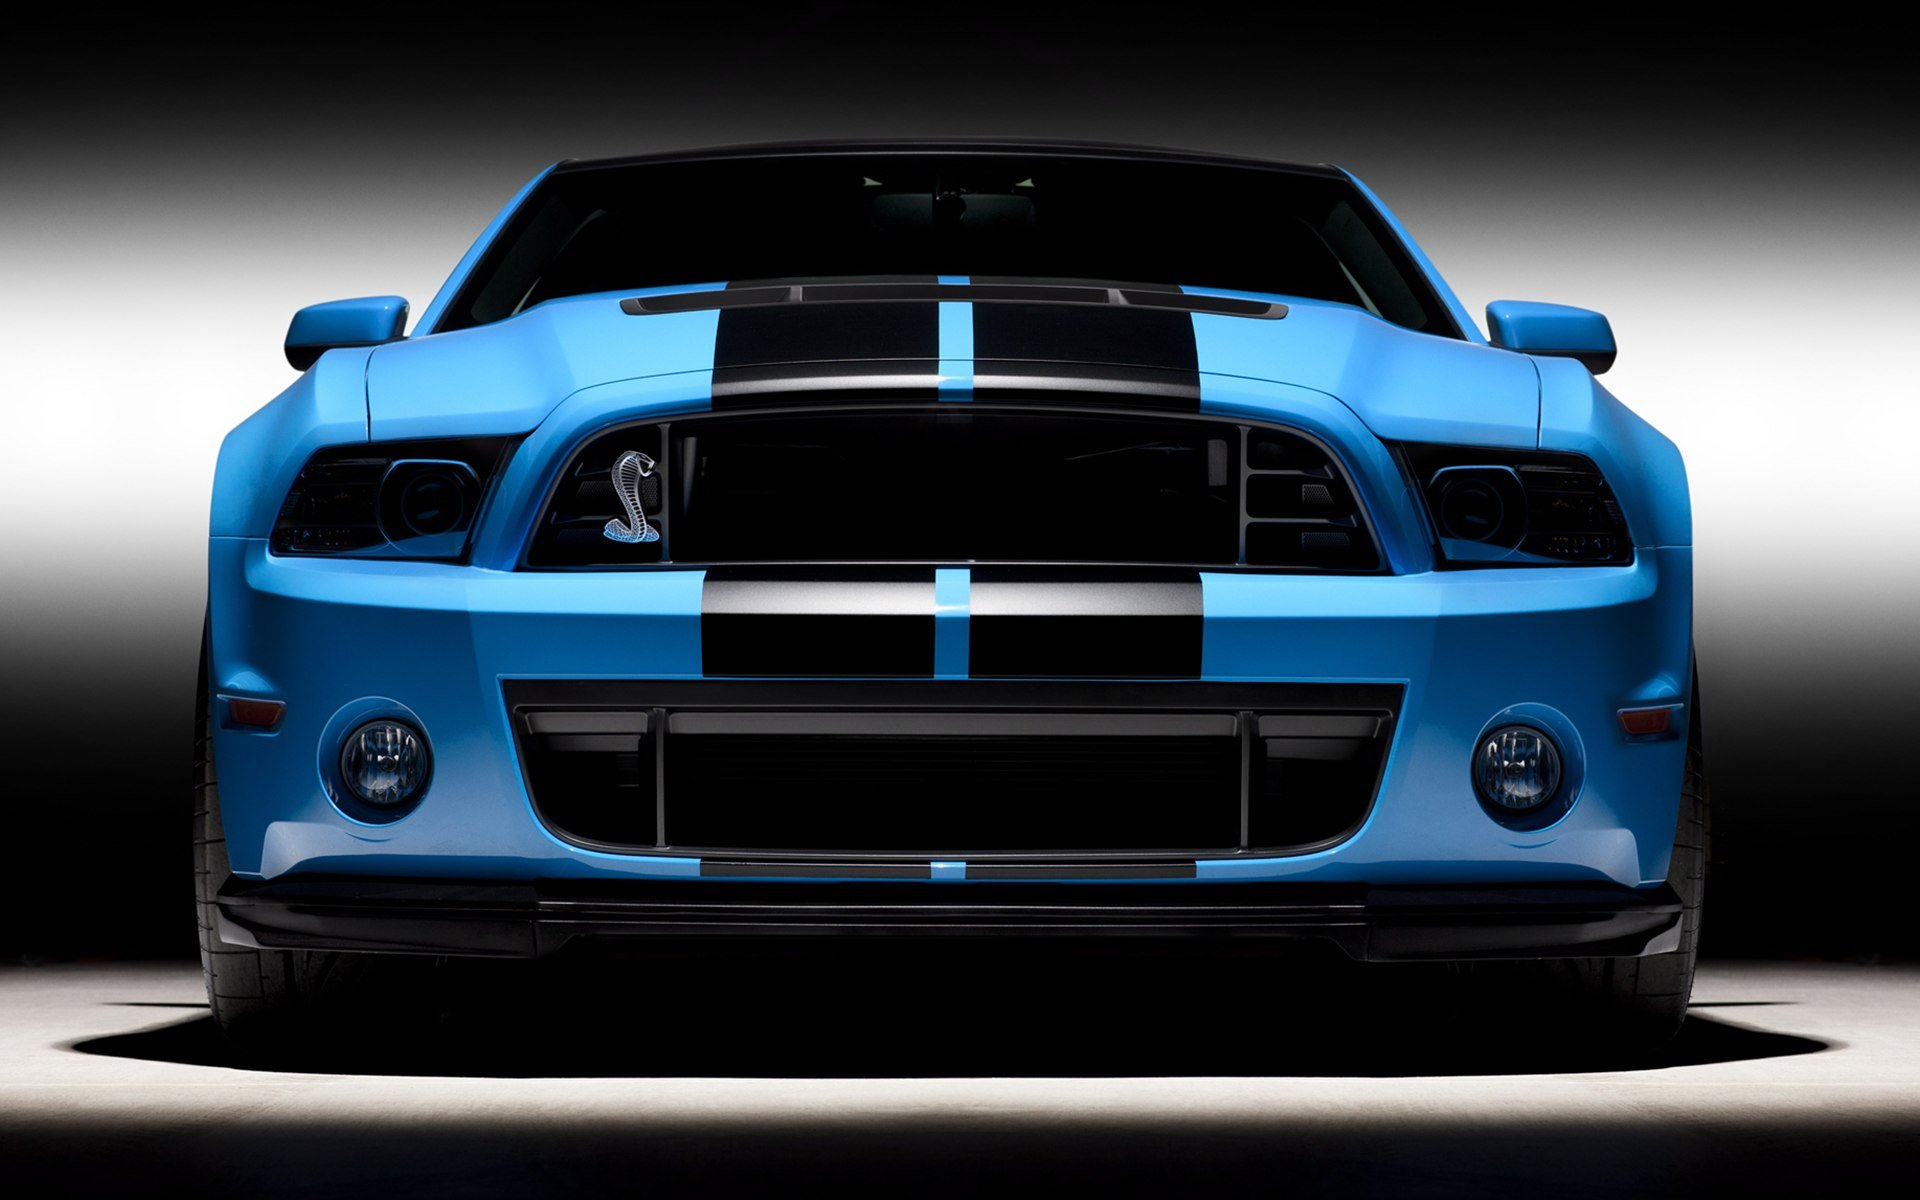 2013 Ford Shelby GT500 3 Wallpaper HD Car Wallpapers 1920x1200